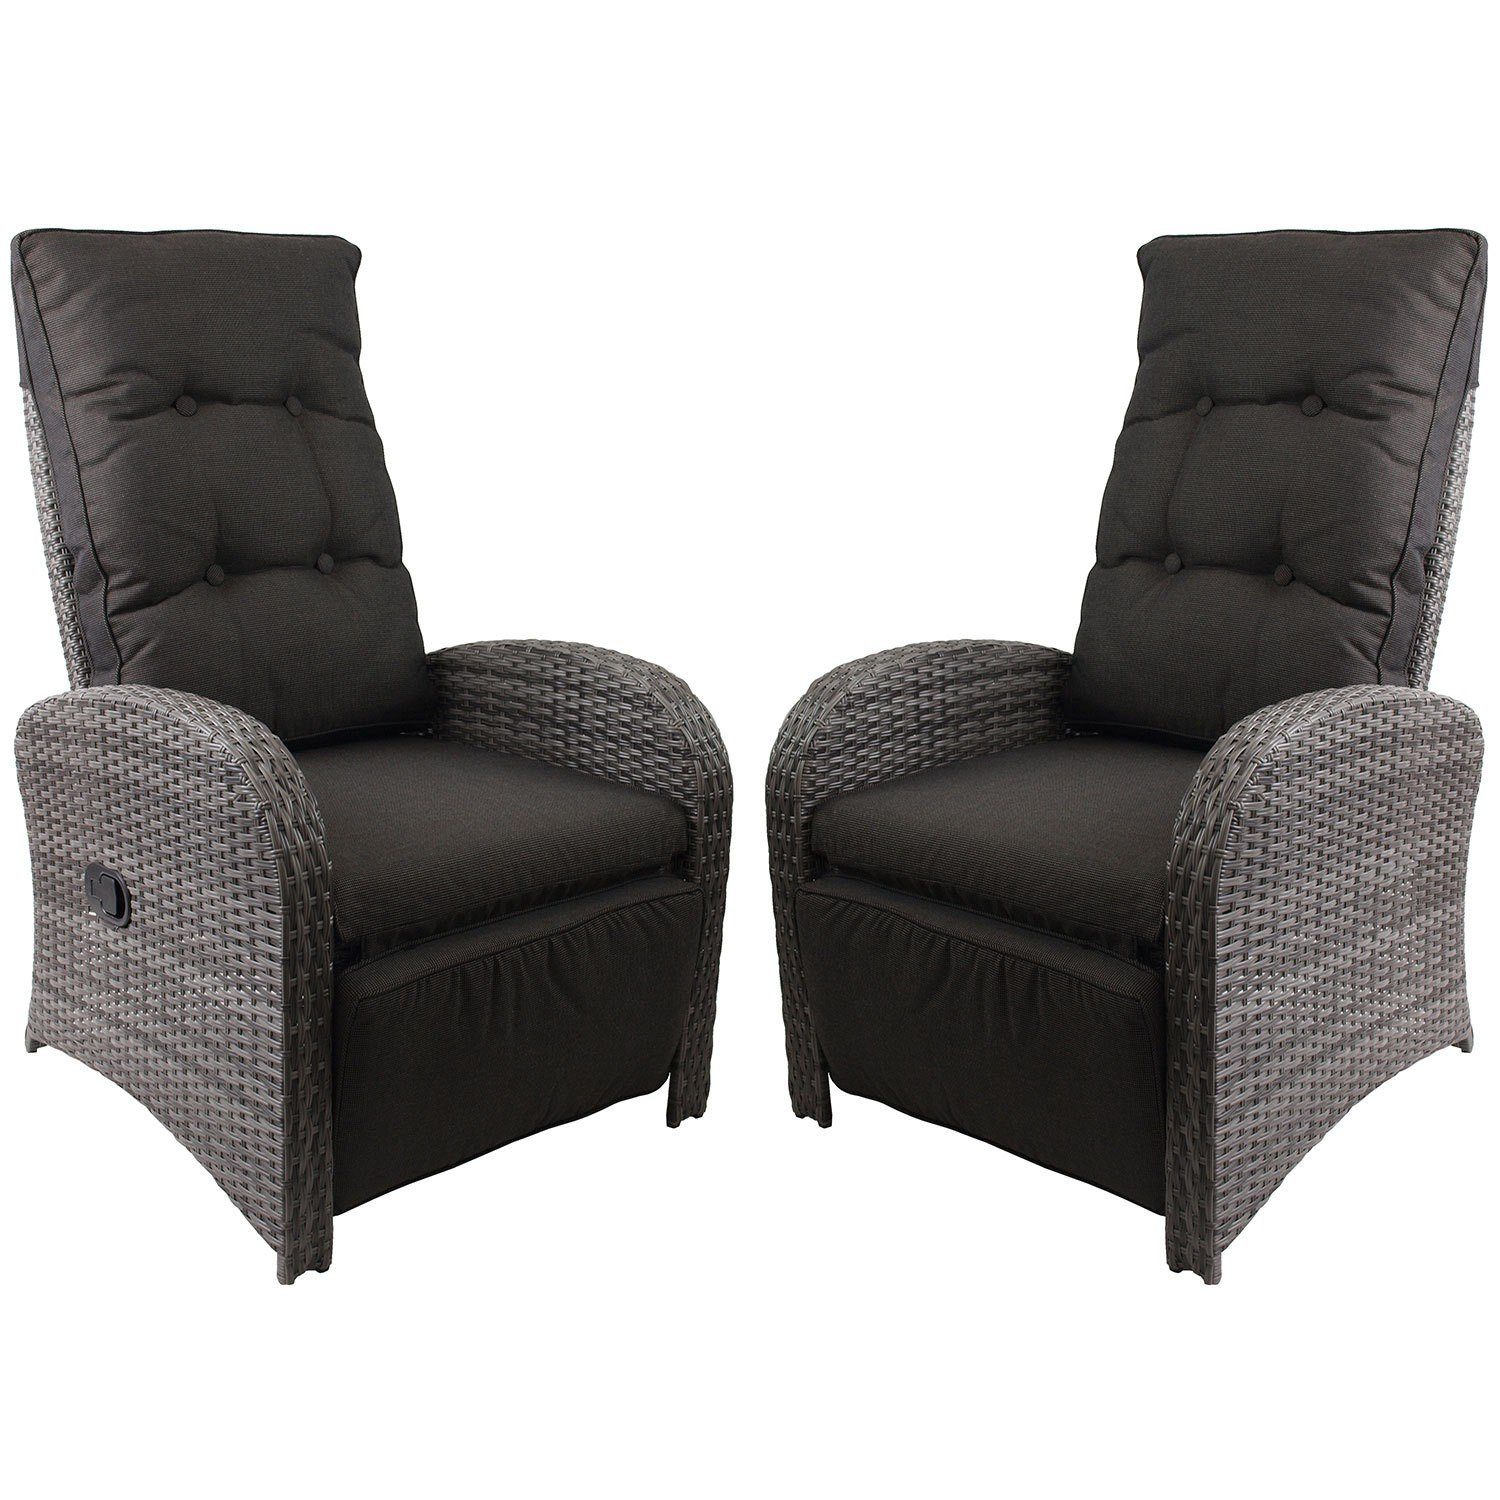 2 st ck poly rattan gartensessel rattanstuhl rattansessel relaxsessel fernsehsessel loungesessel. Black Bedroom Furniture Sets. Home Design Ideas